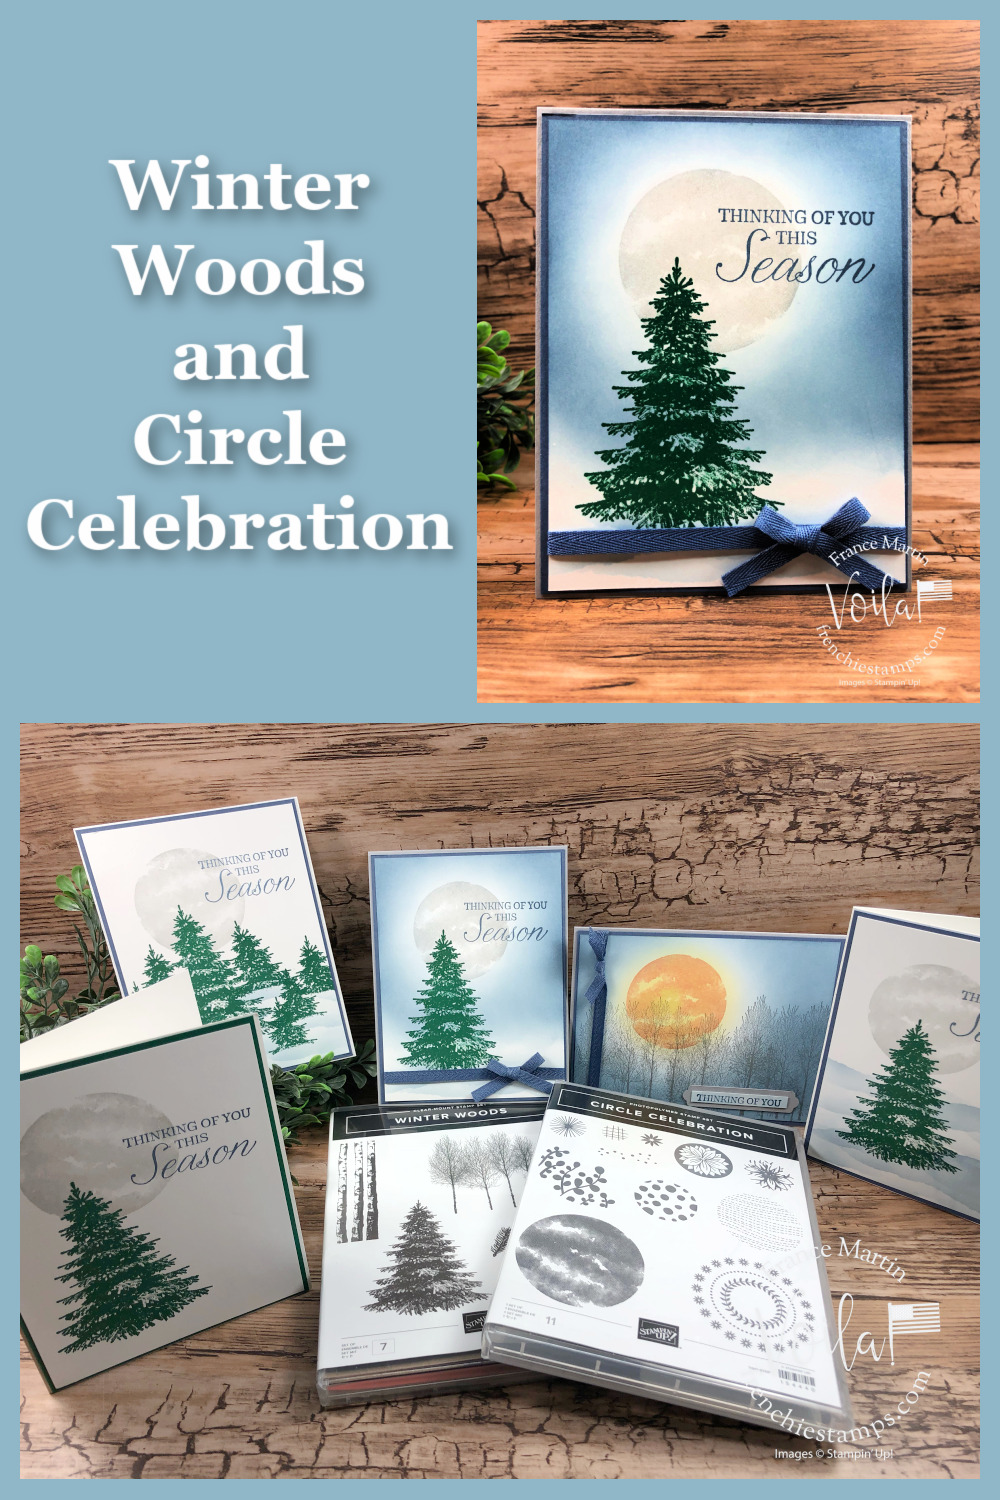 Scenery With Winter Woods and Circle Celebration